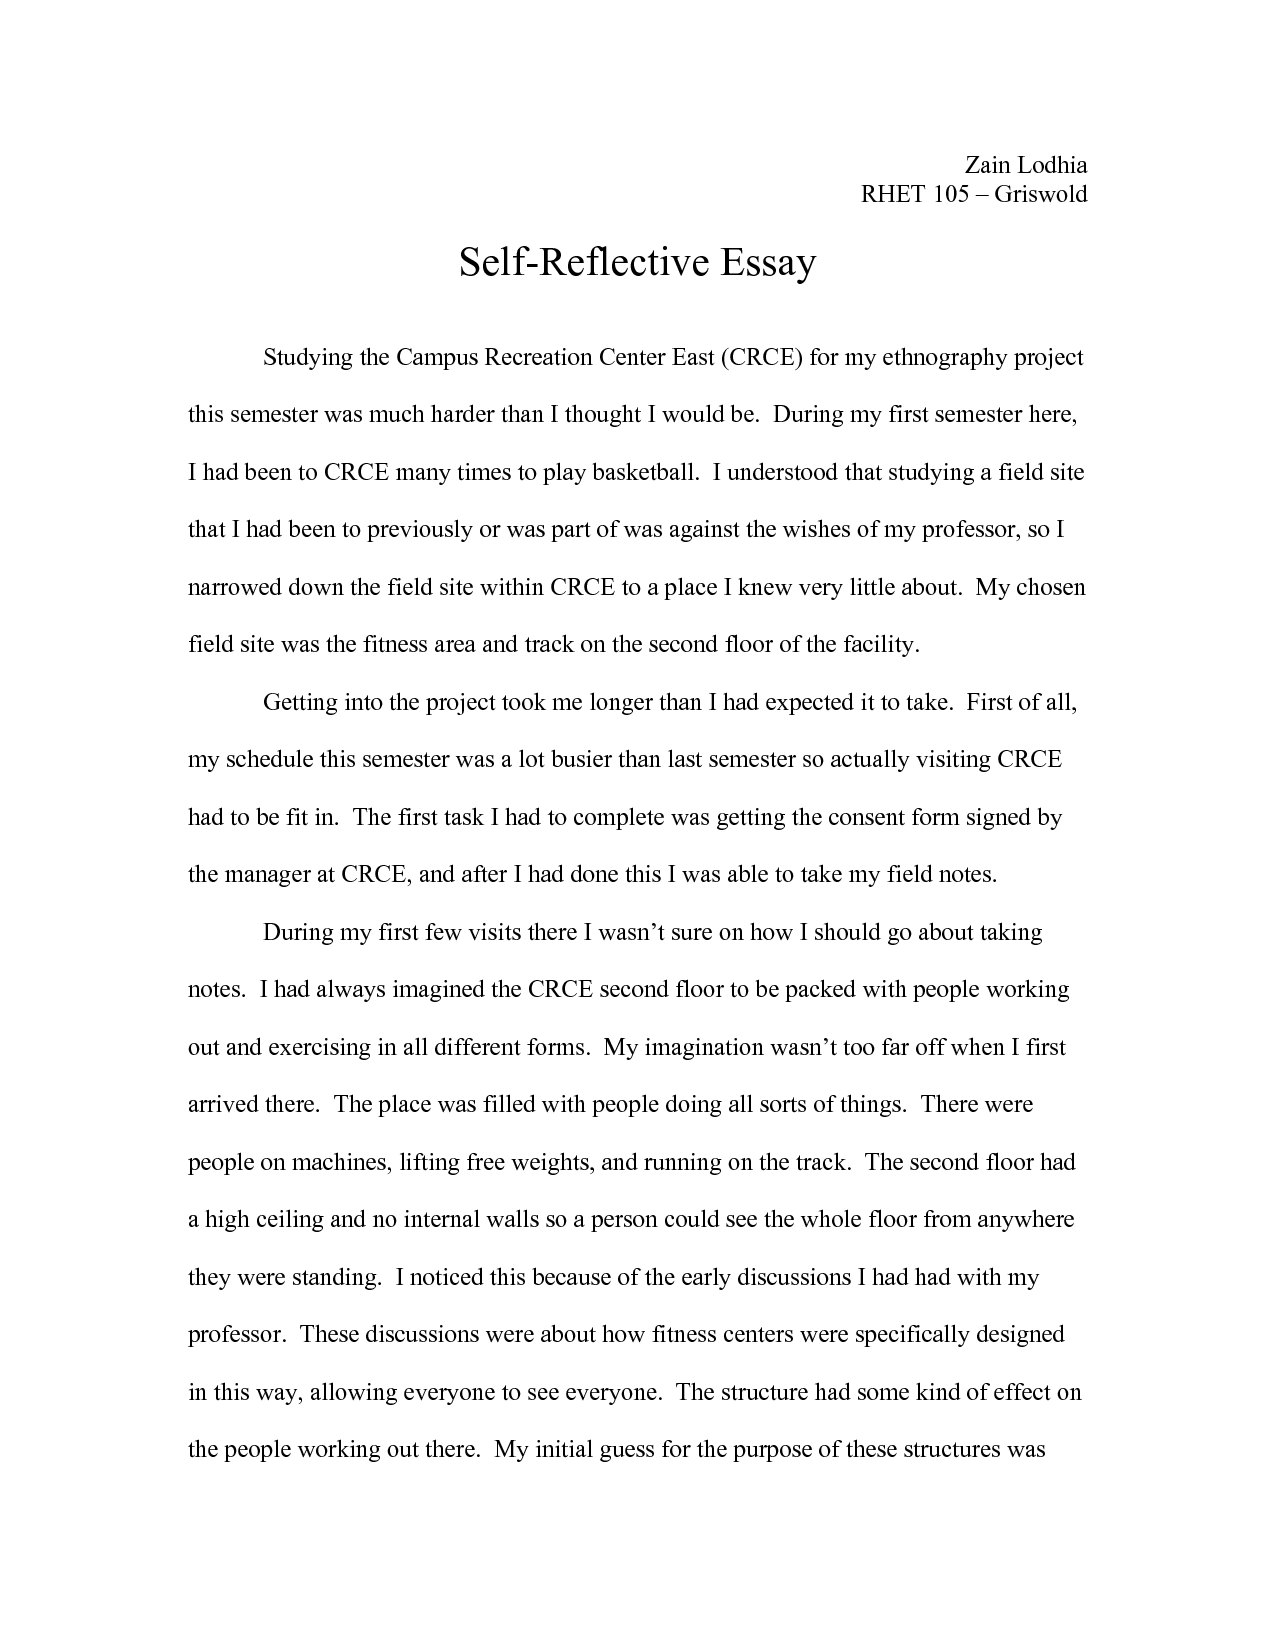 personal reflection essay example Melo.in tandem.co